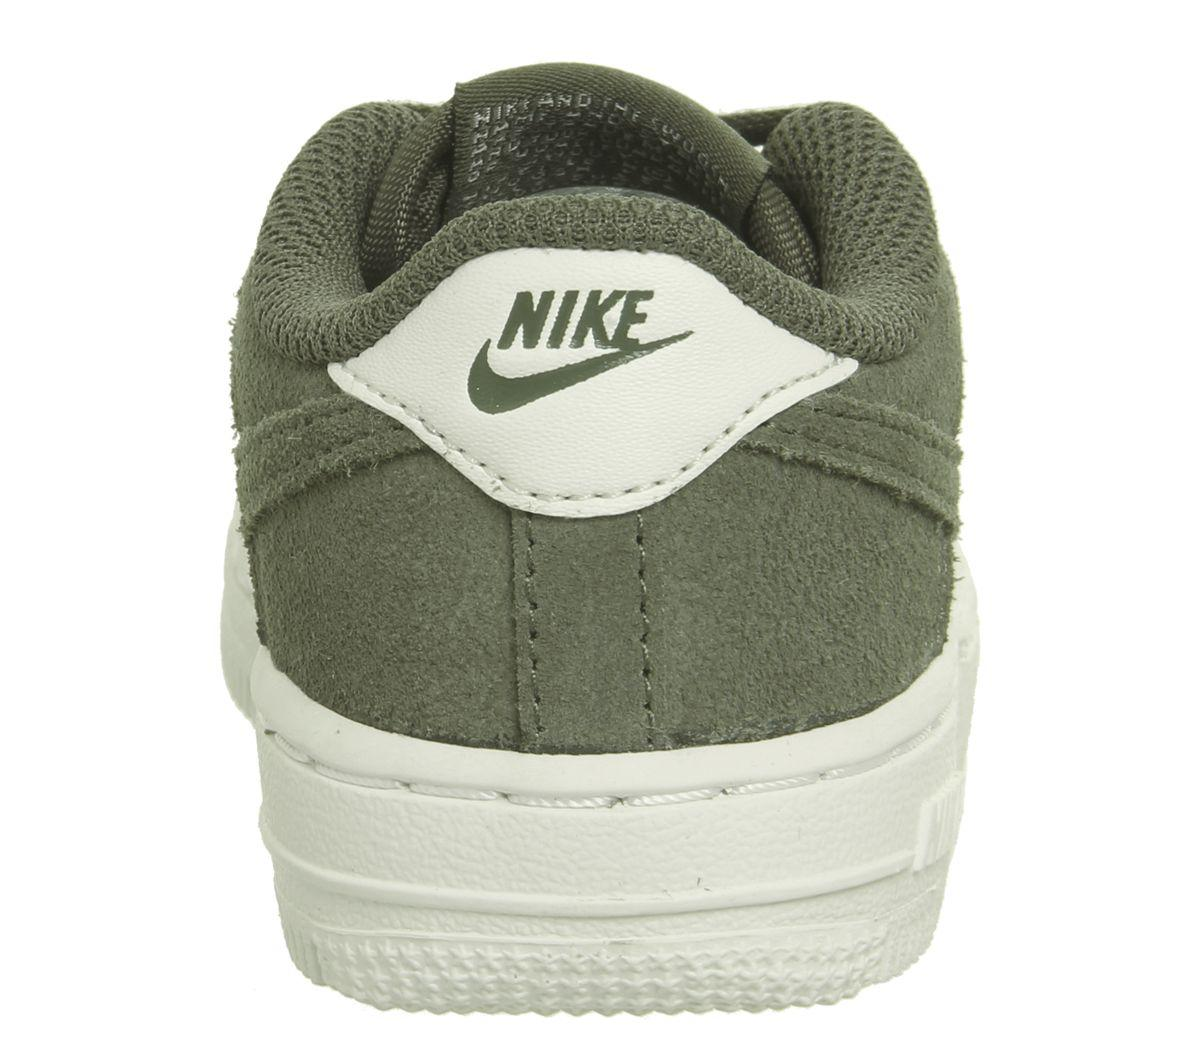 Nike Rubber Air Force 1 Infant Trainers